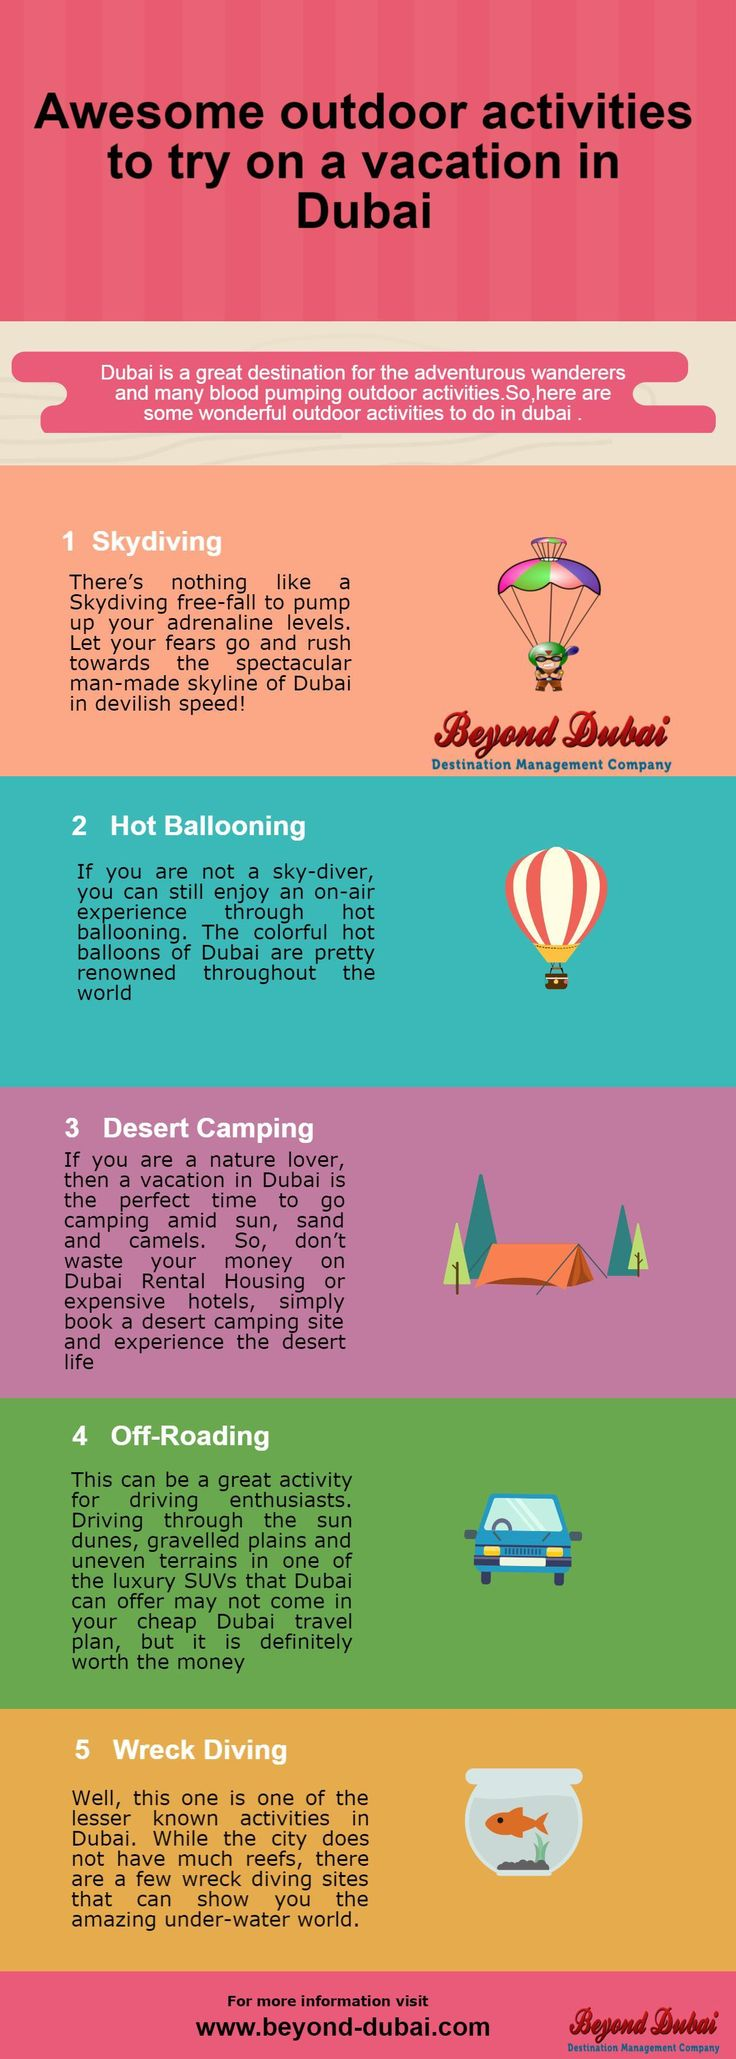 Dubai is a great destination for the adventurous wanderers and many blood pumping outdoor activities.So,here are some wonderful outdoor activities to do in dubai .